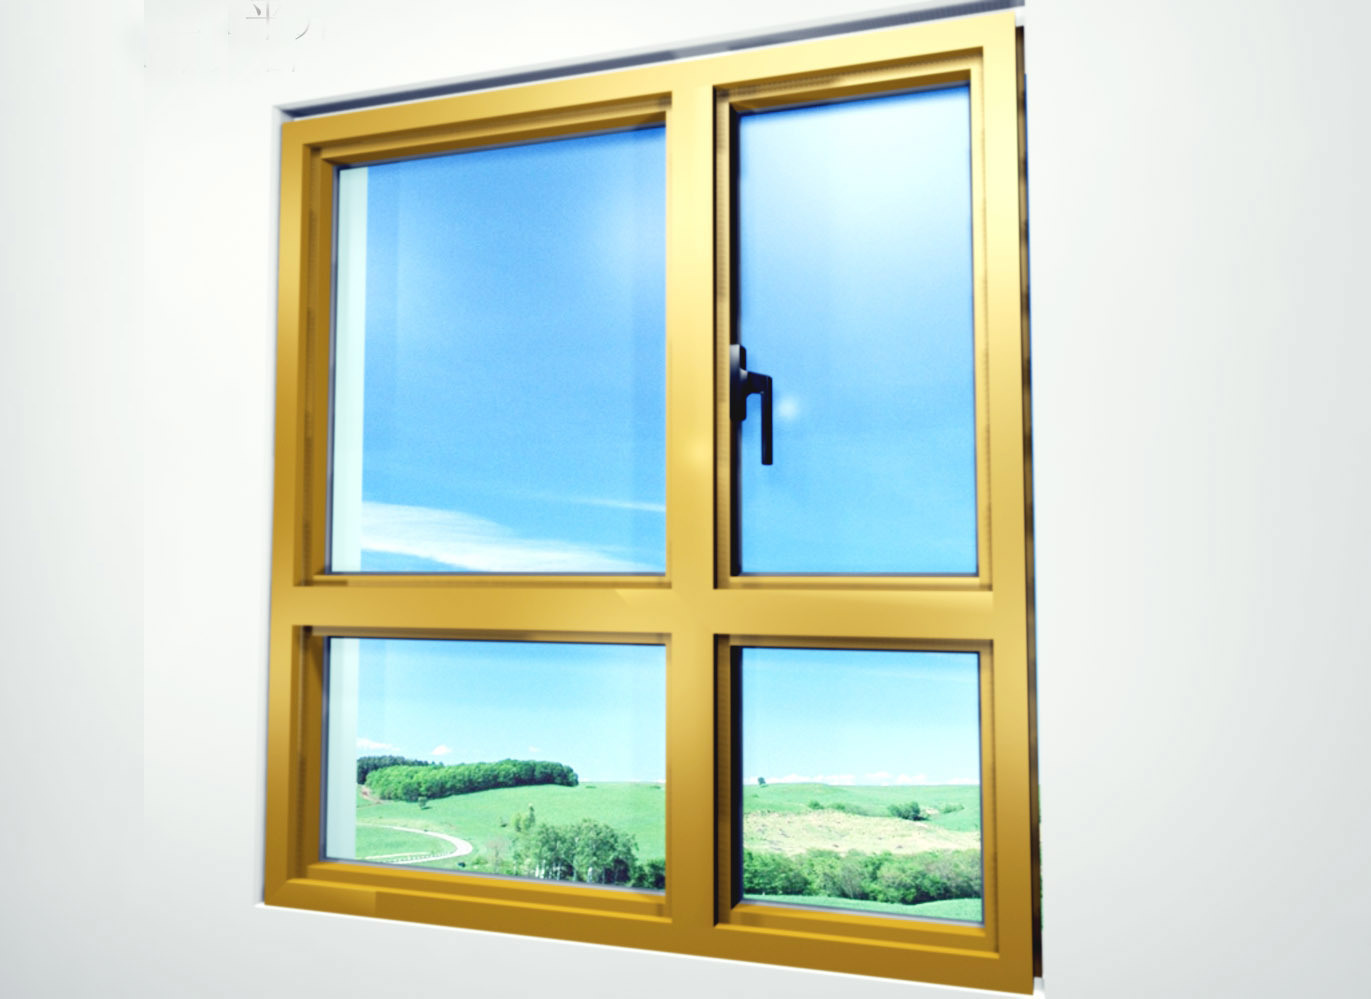 Aluminum window aluminum window uk for Window design group